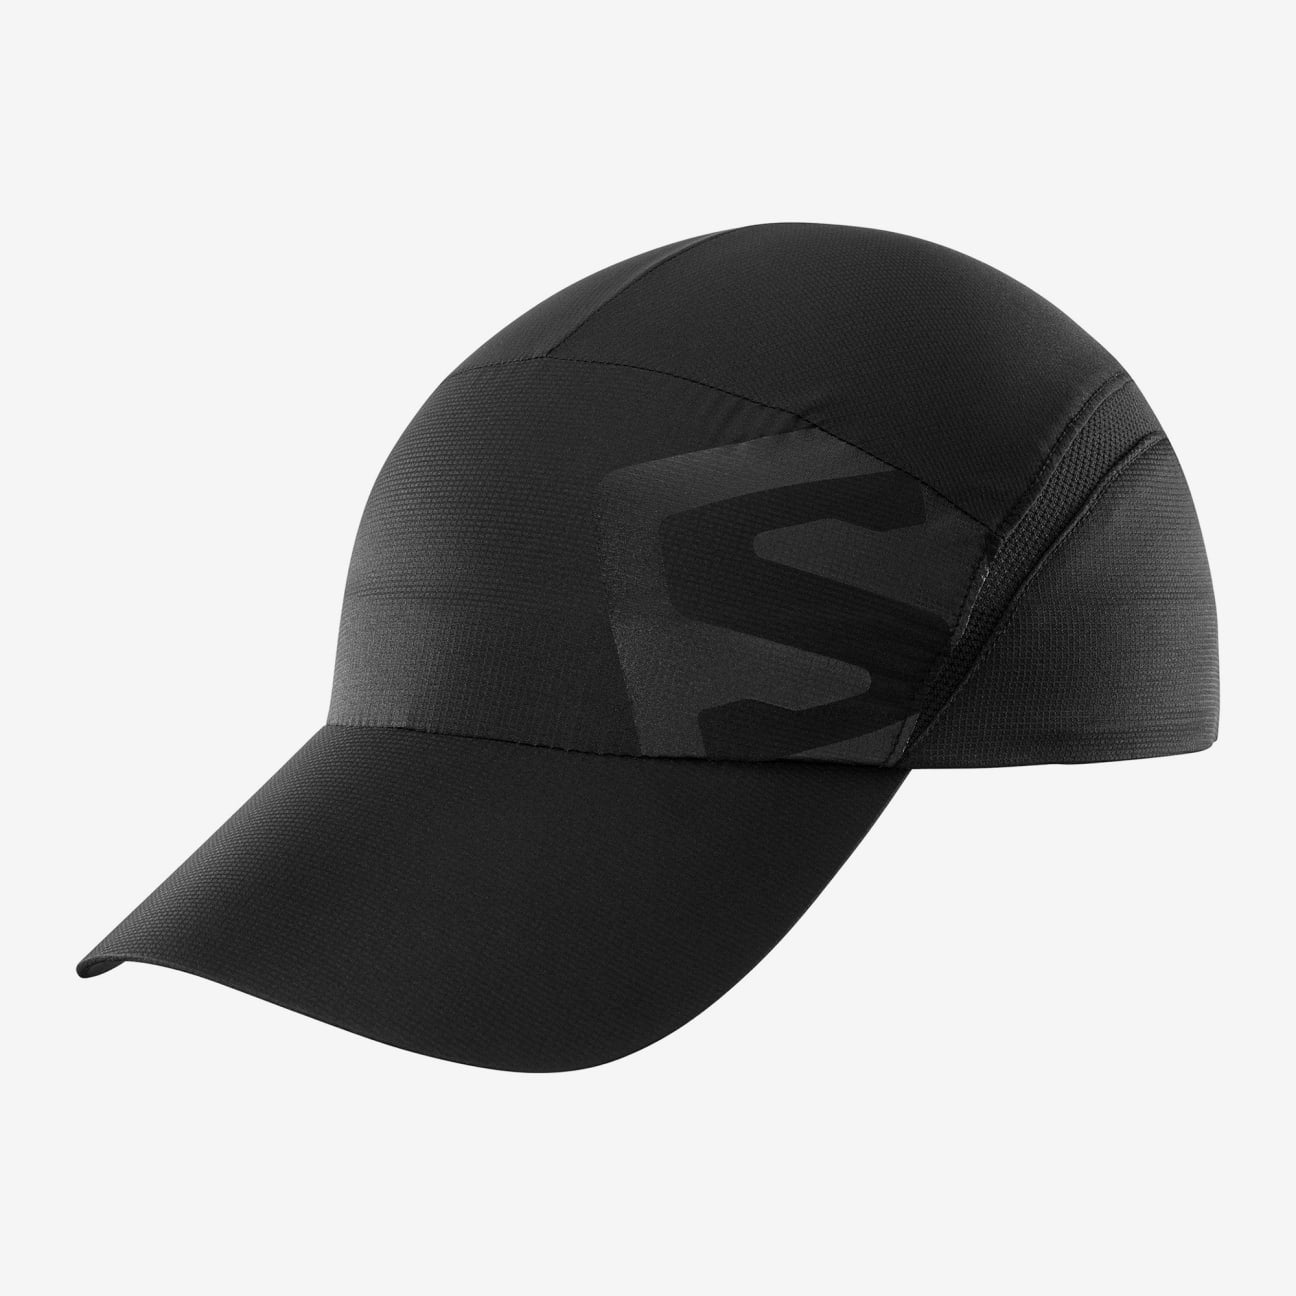 Salomon XA Cap (Black/Shiny Black)